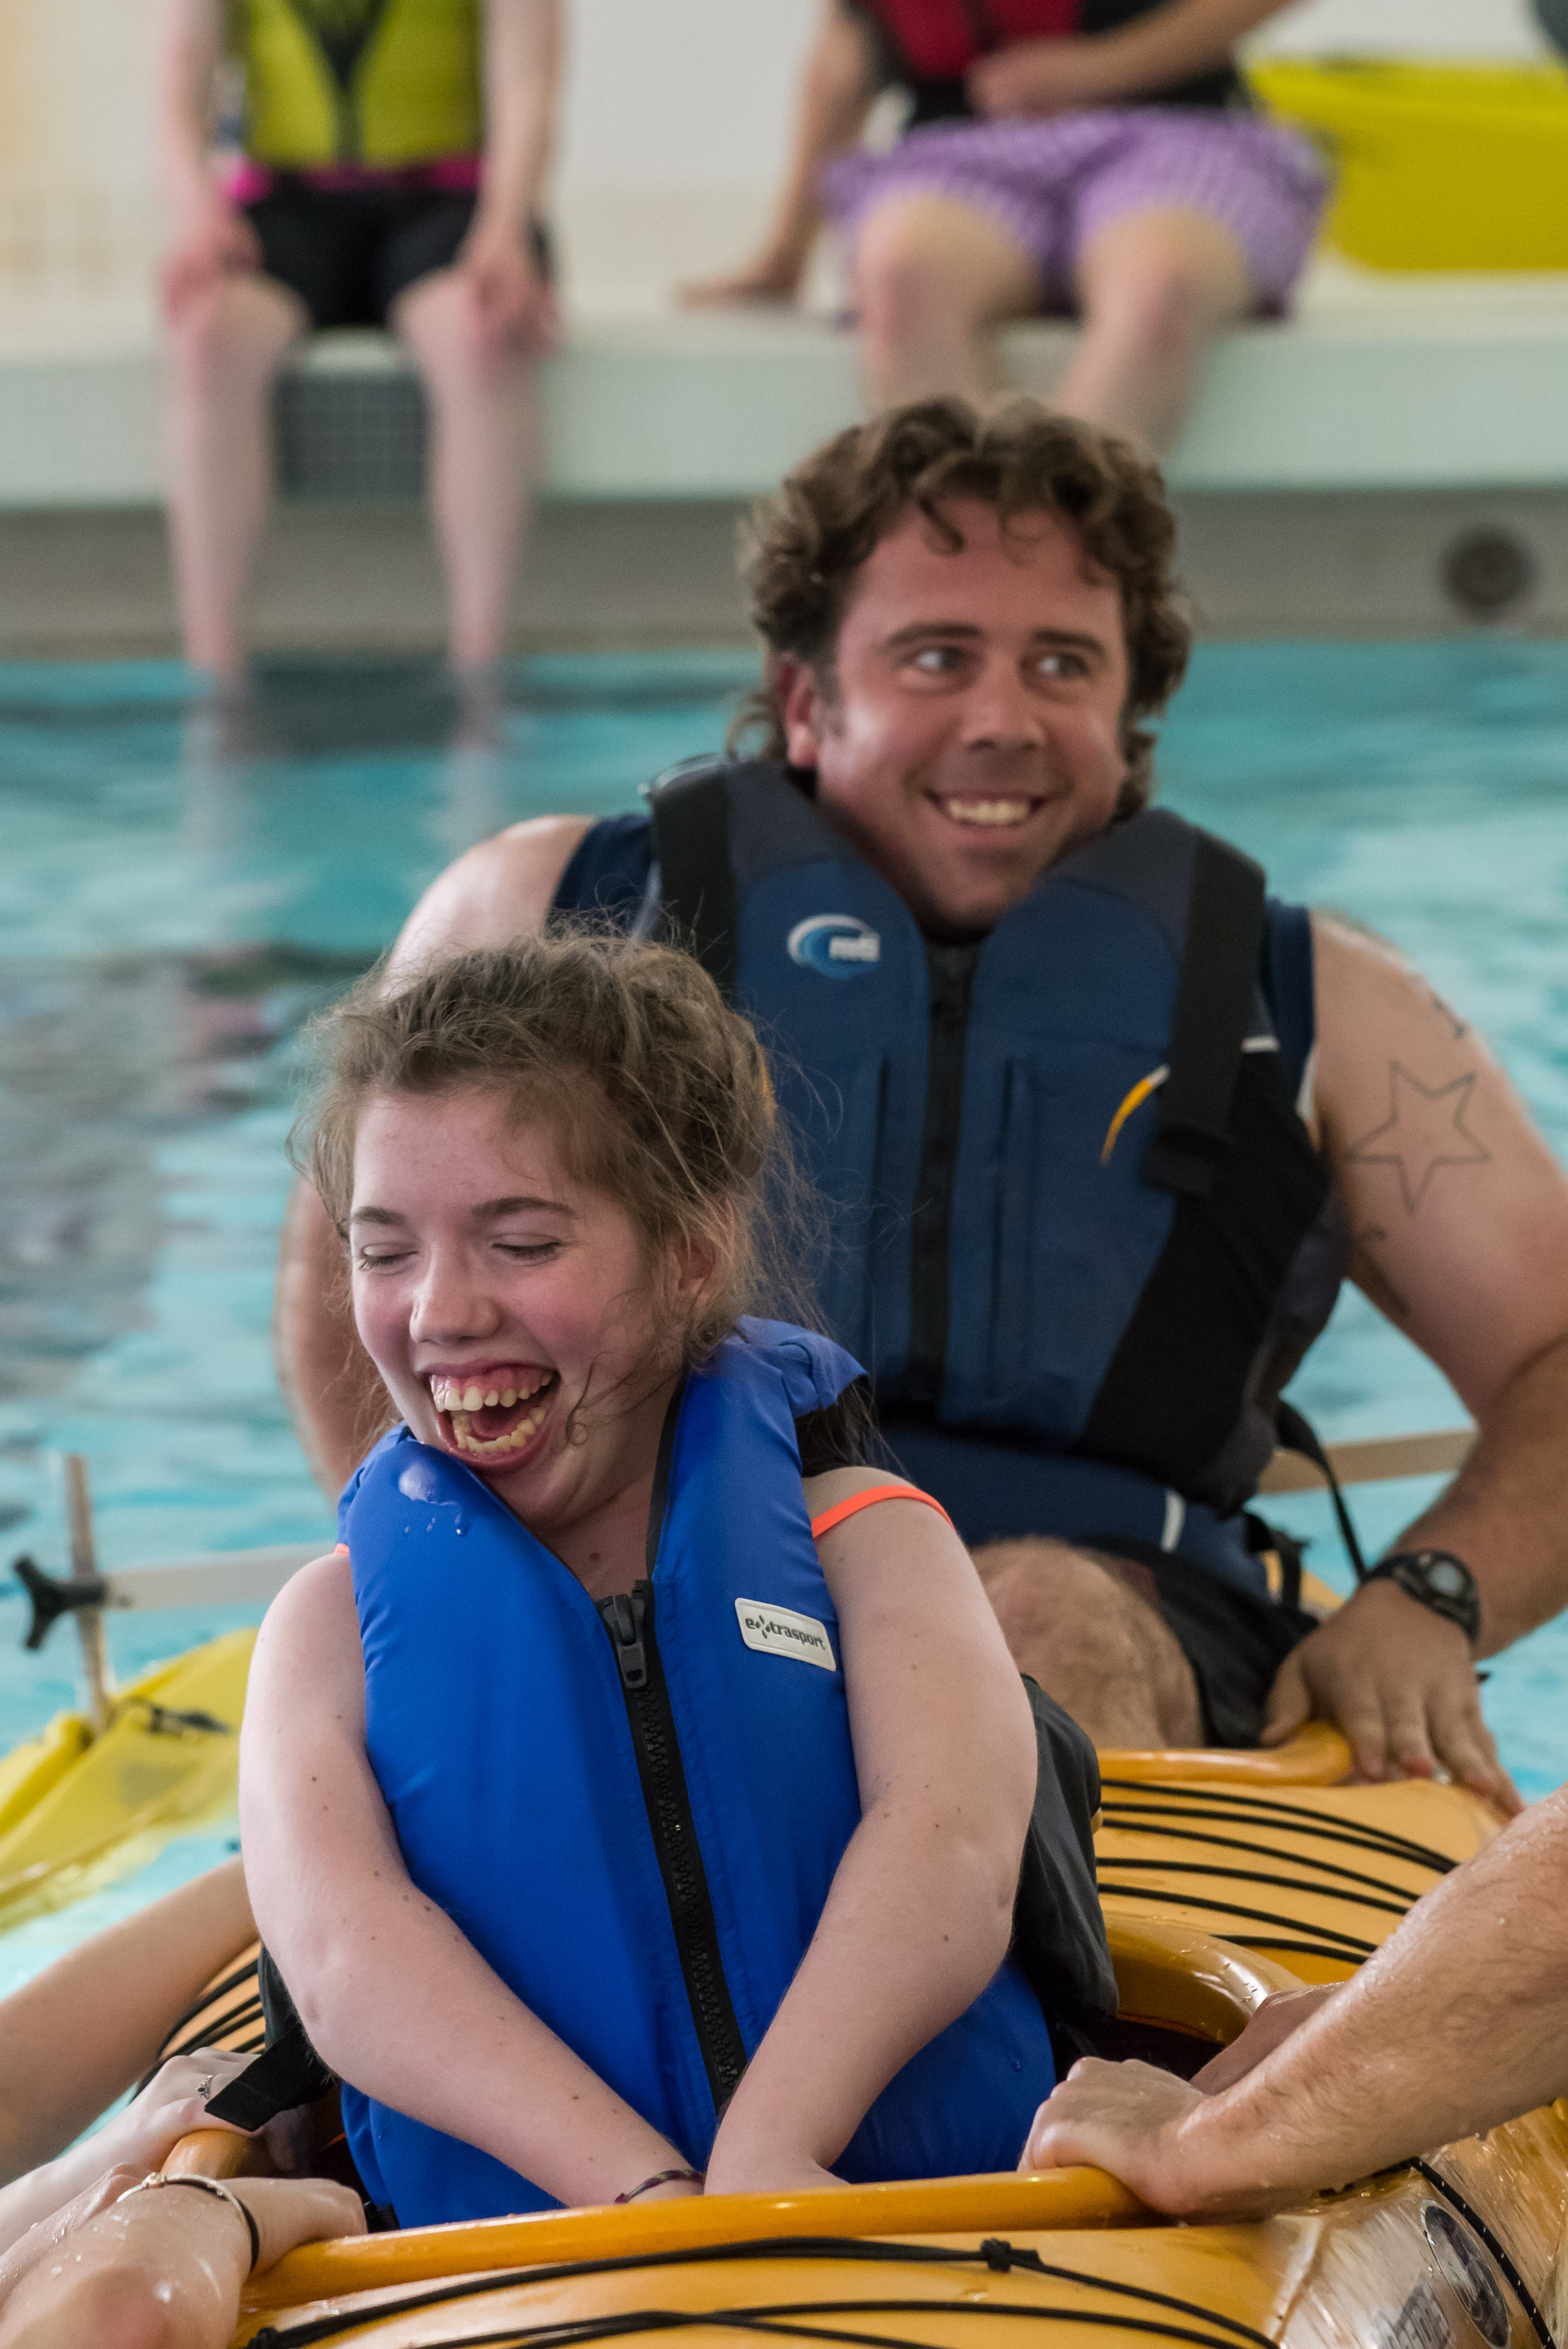 Two people getting into a kayak in a pool. Both are smiling and laughing.